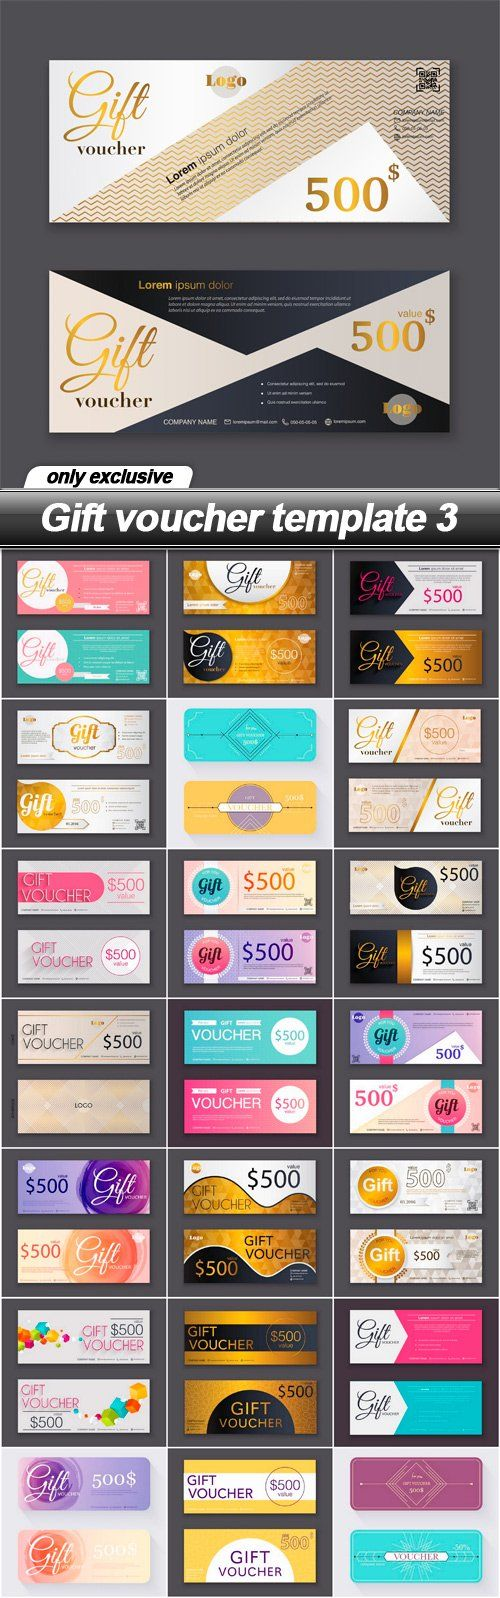 making a gift certificate